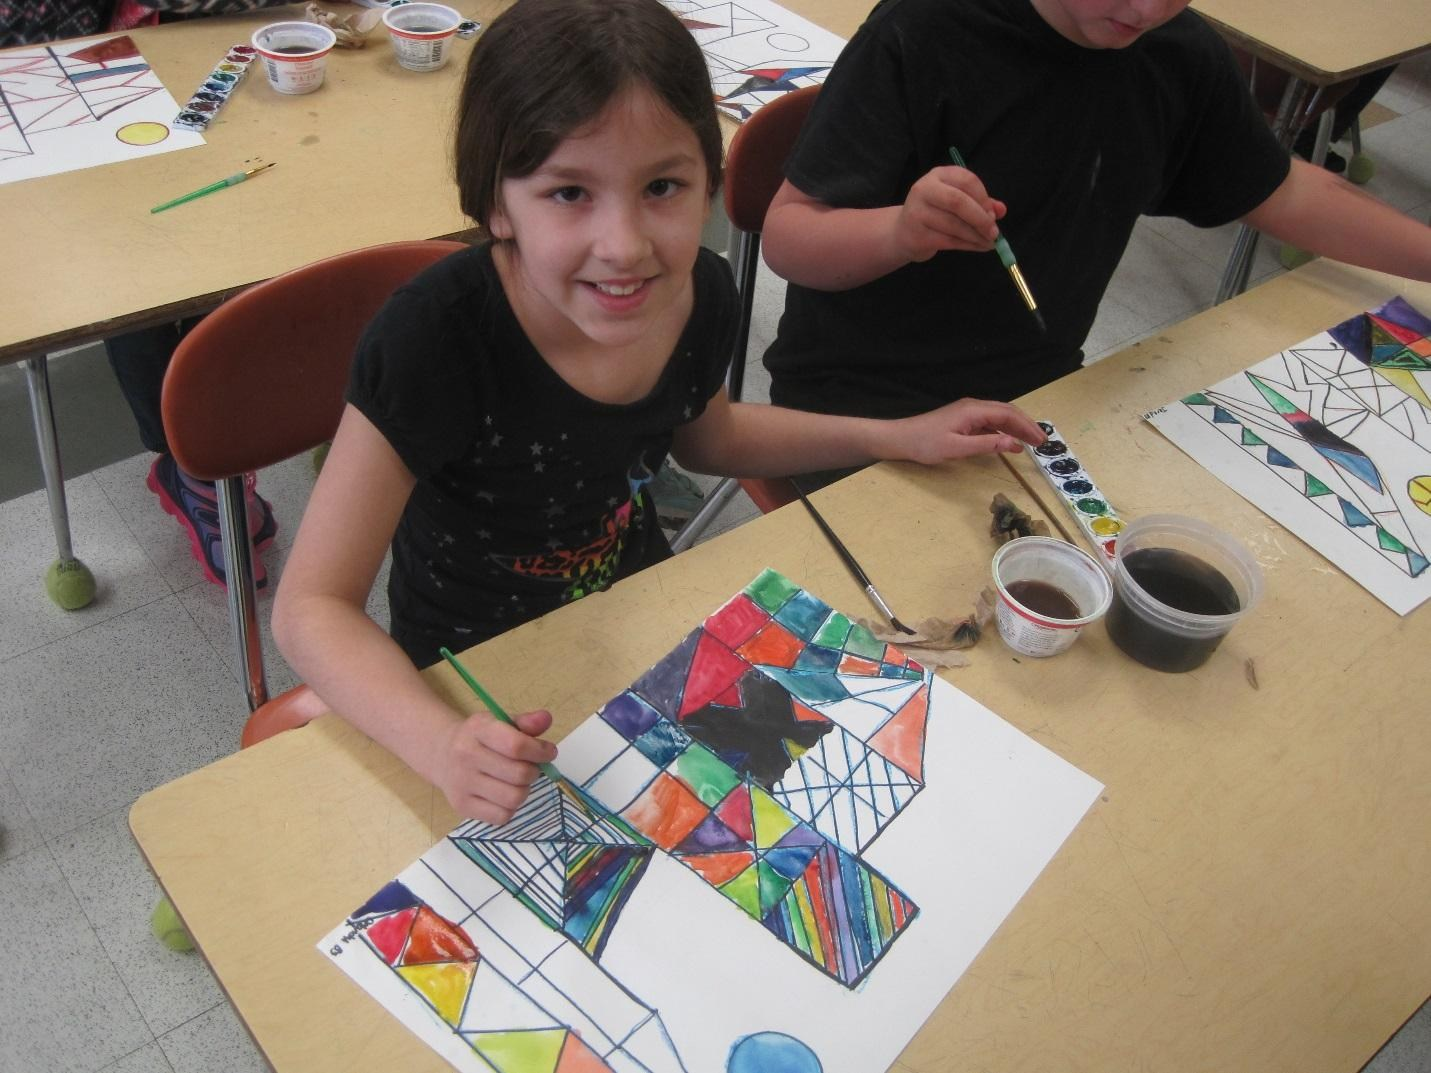 Elementary student hard at work in art class